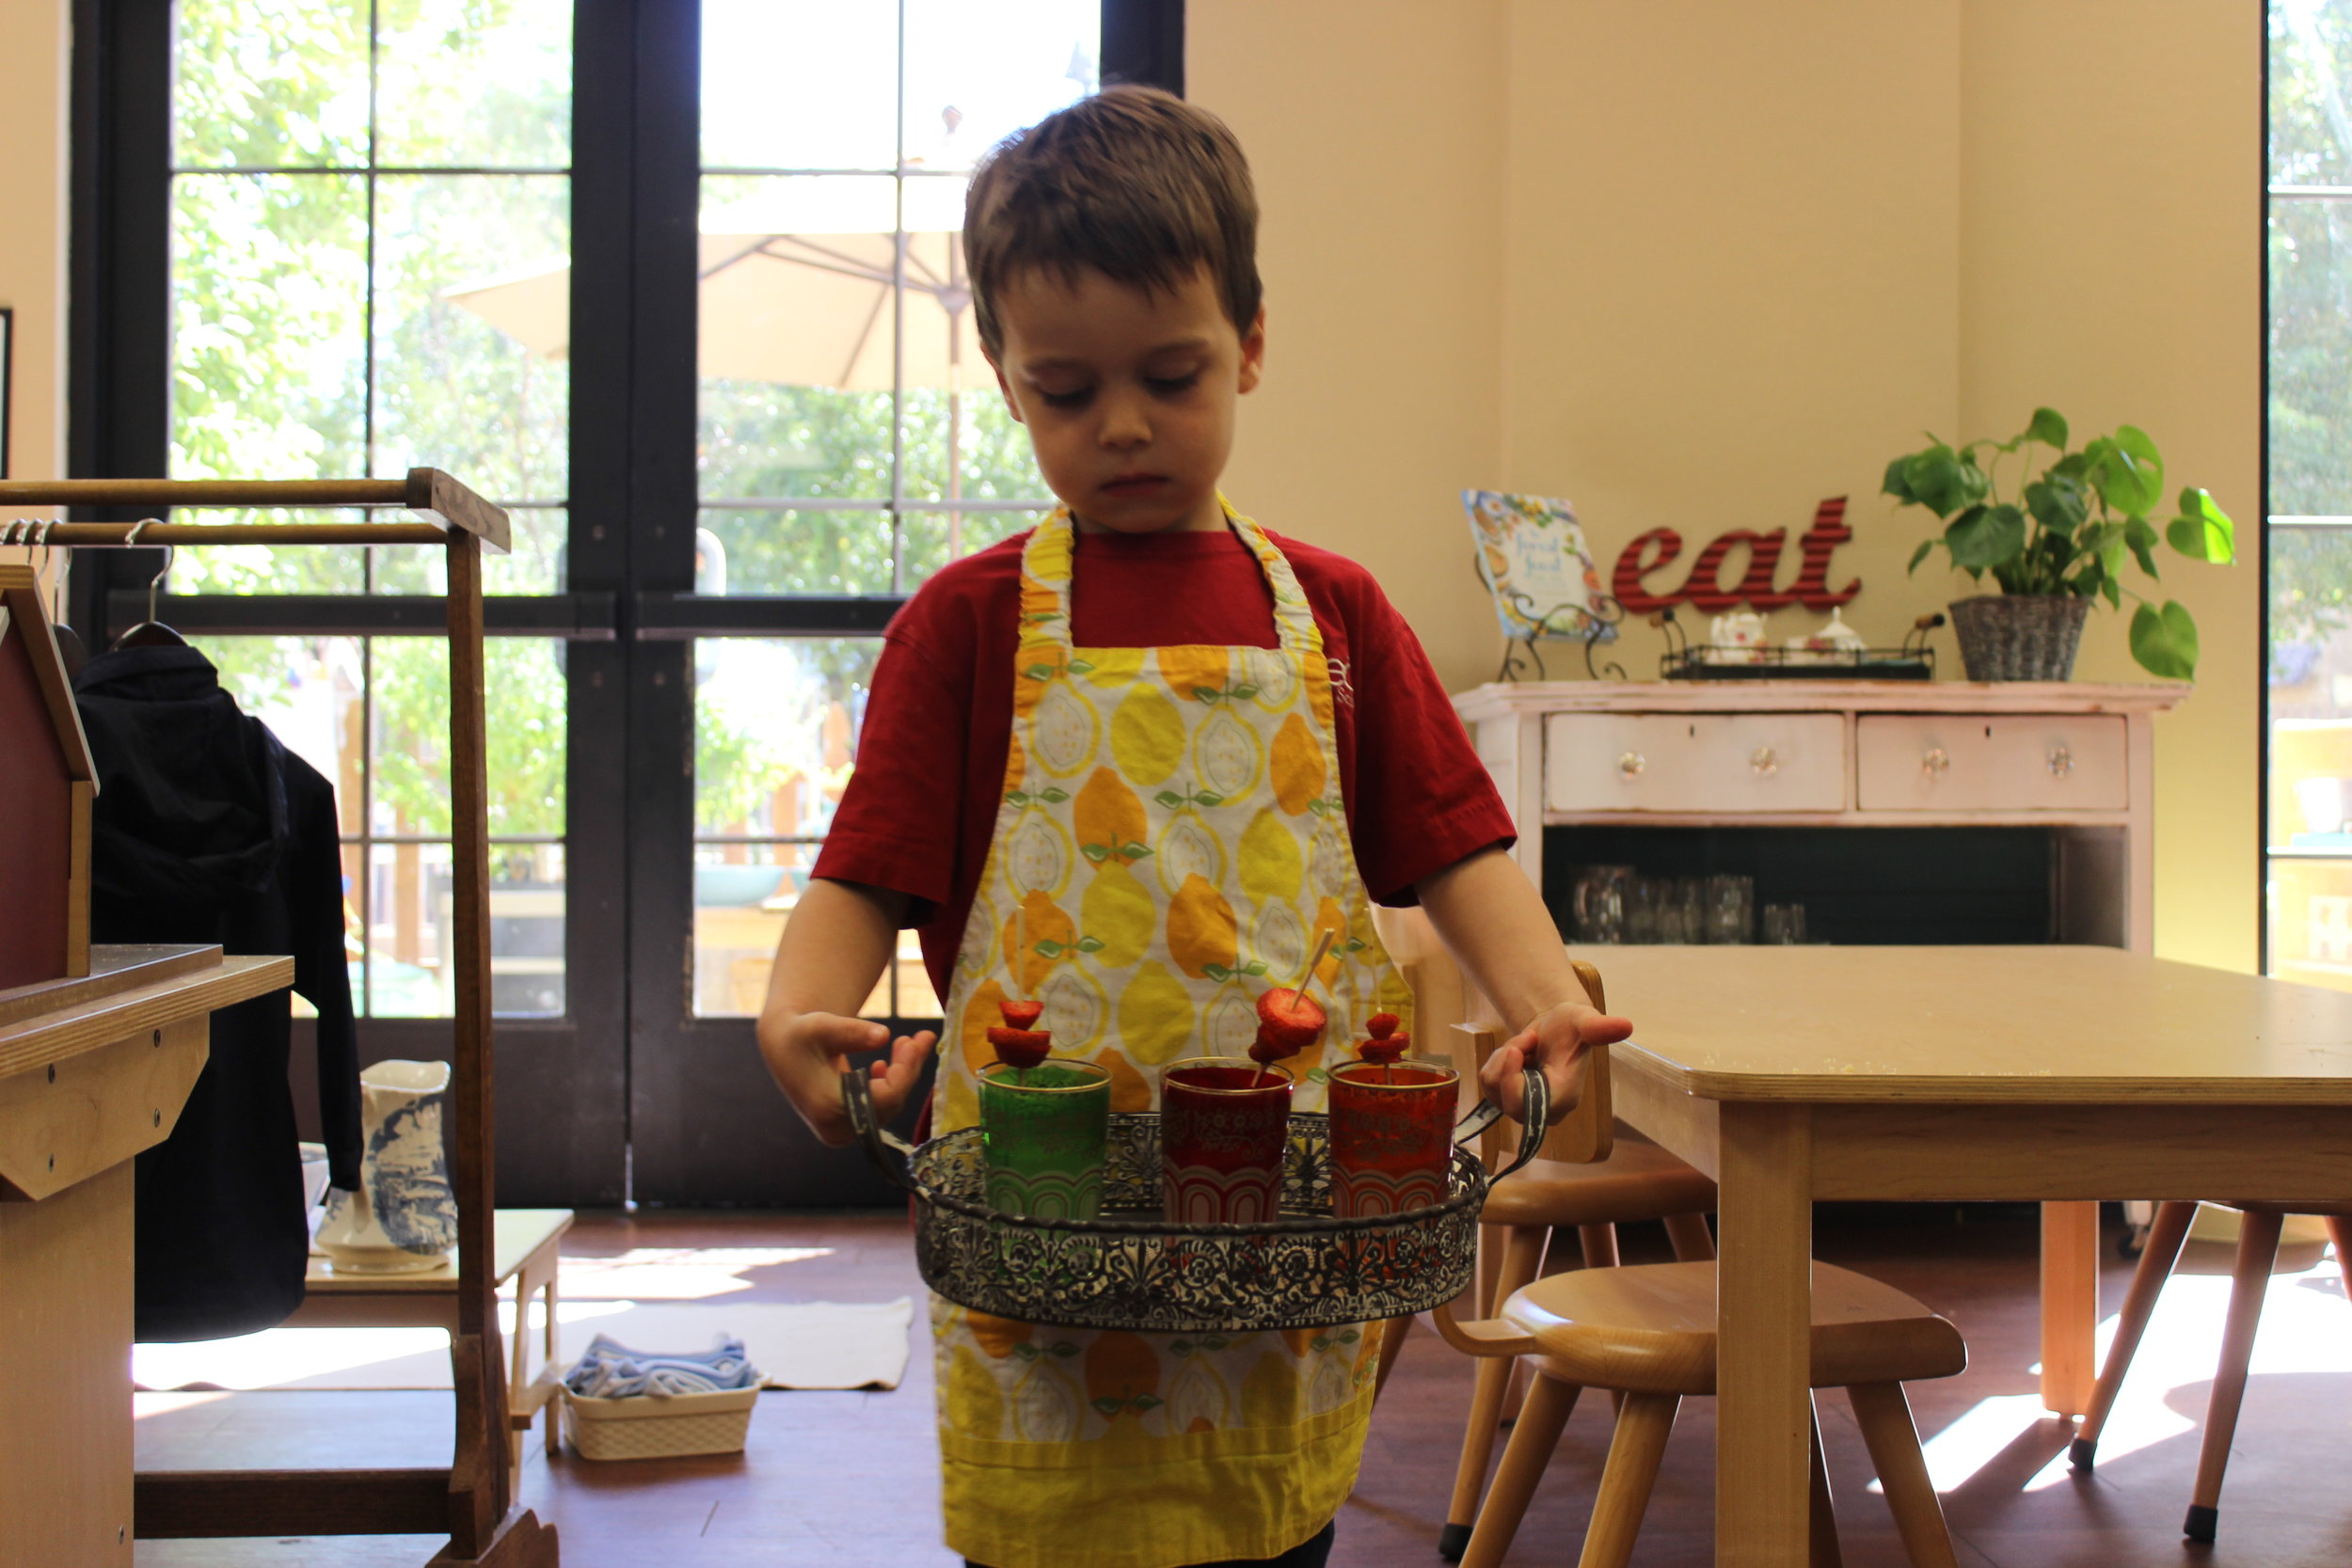 Carrying his fresh squeezed lemonade garnished with strawberries to serve to the office staff.